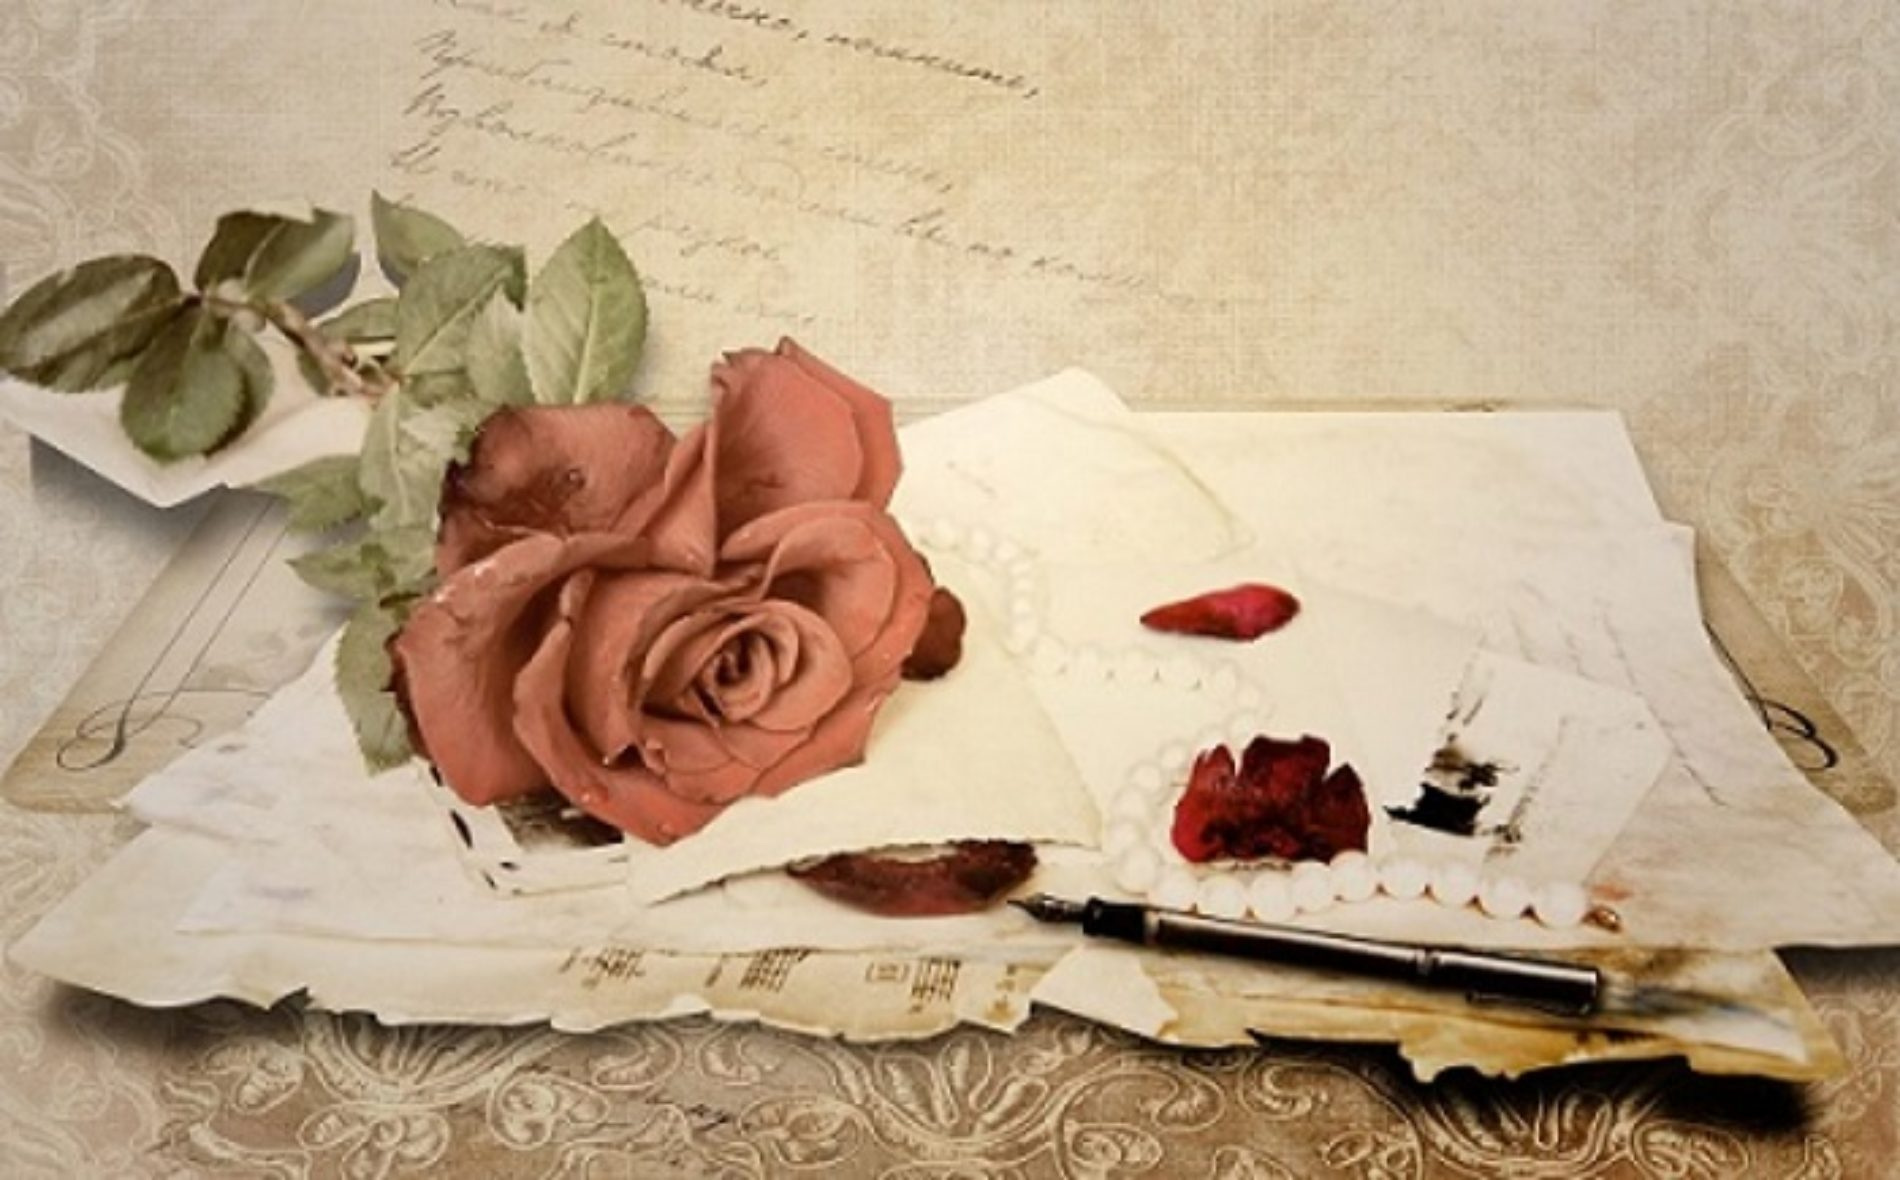 THE OPEN LOVE LETTERS: Entry 4